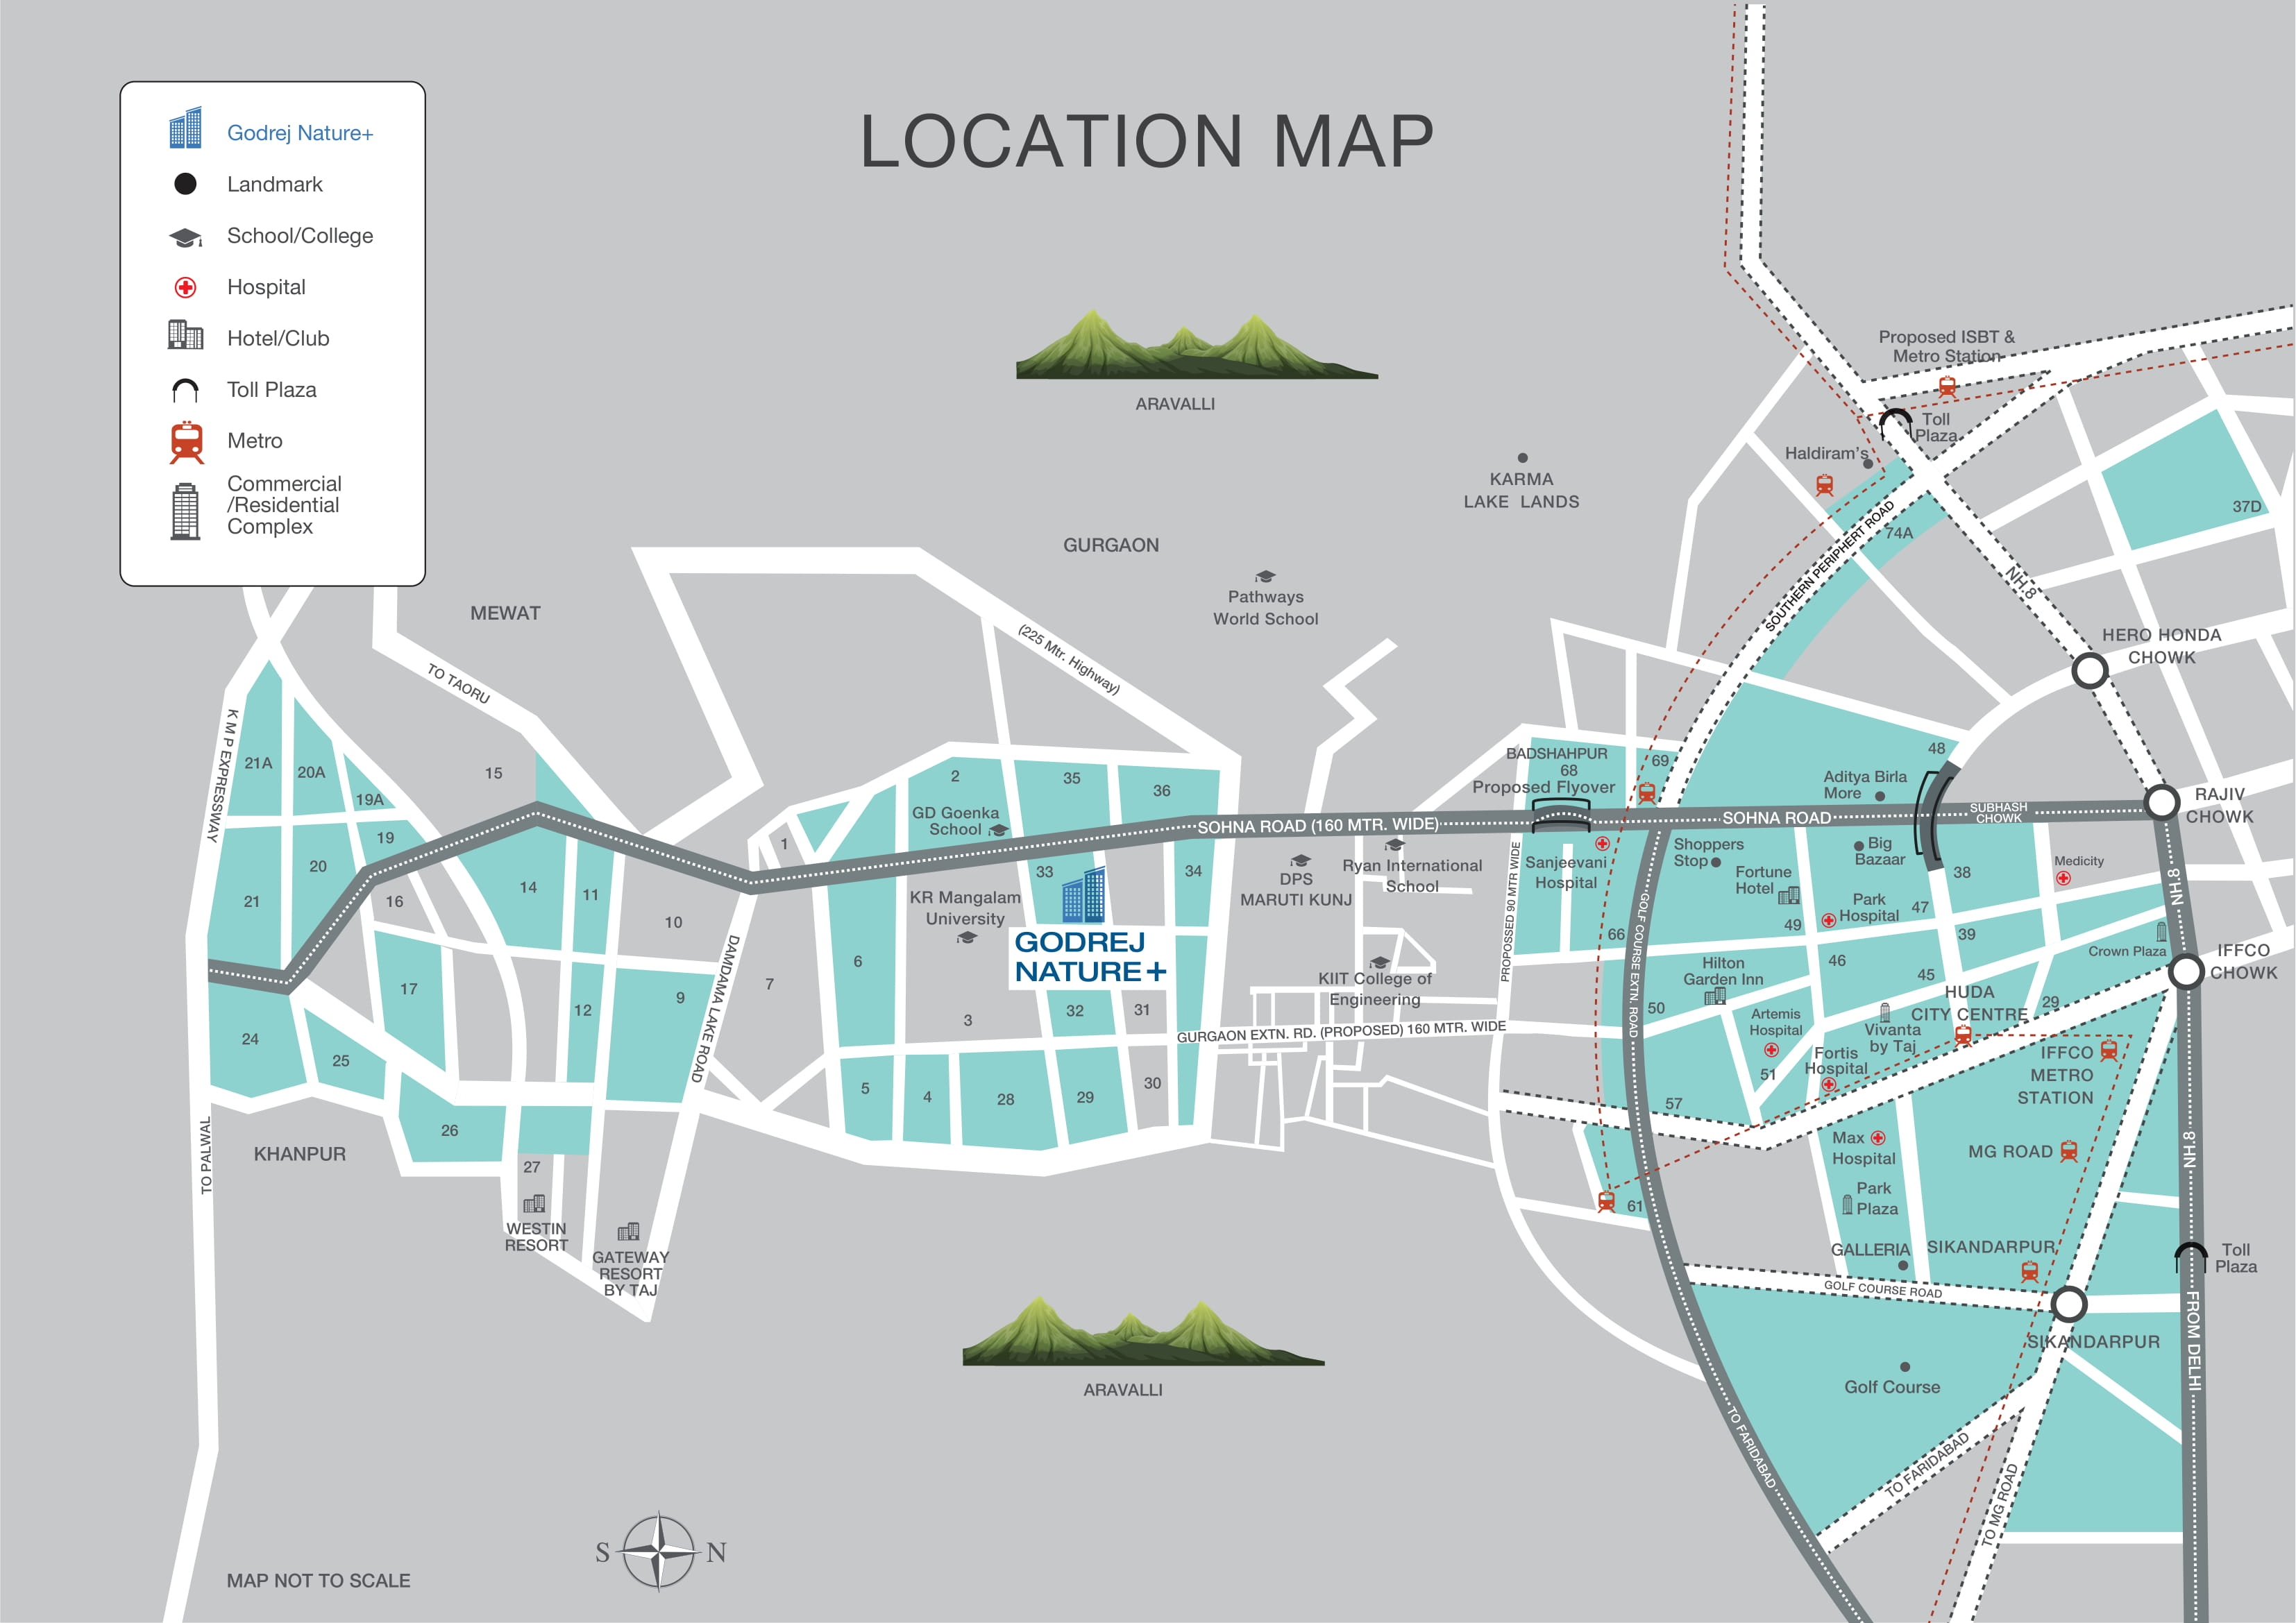 Godrej-Nature-Location-Map